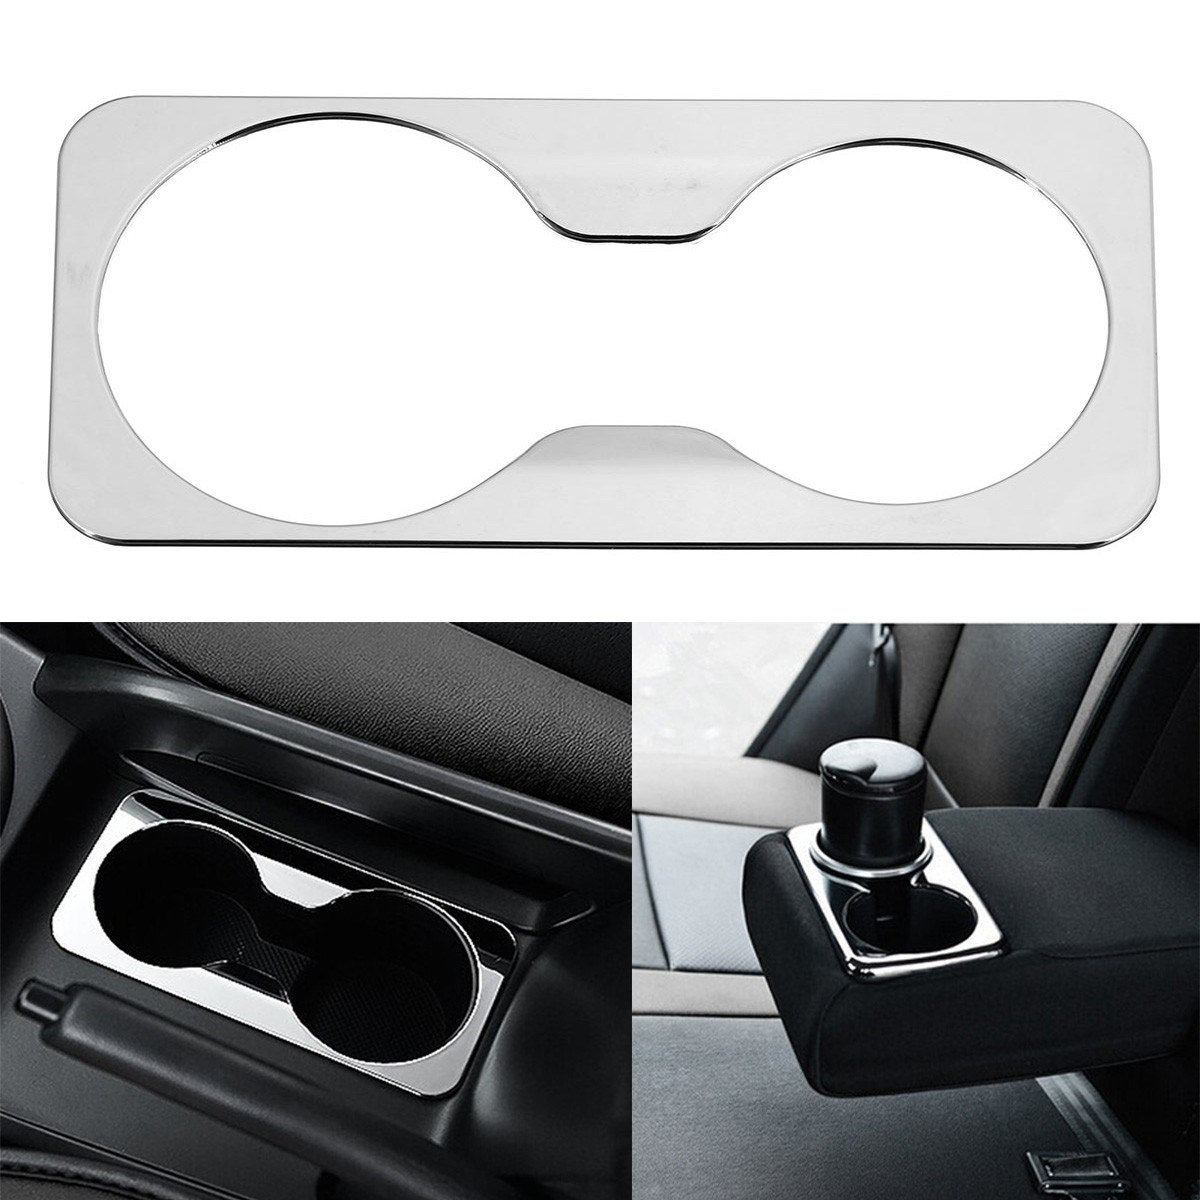 For Kia Sportage R 2012 2013 2014 2015 Front Back Water Cup Decorative Cover Sticker Case ABS Chrome Covers Car Styling цена